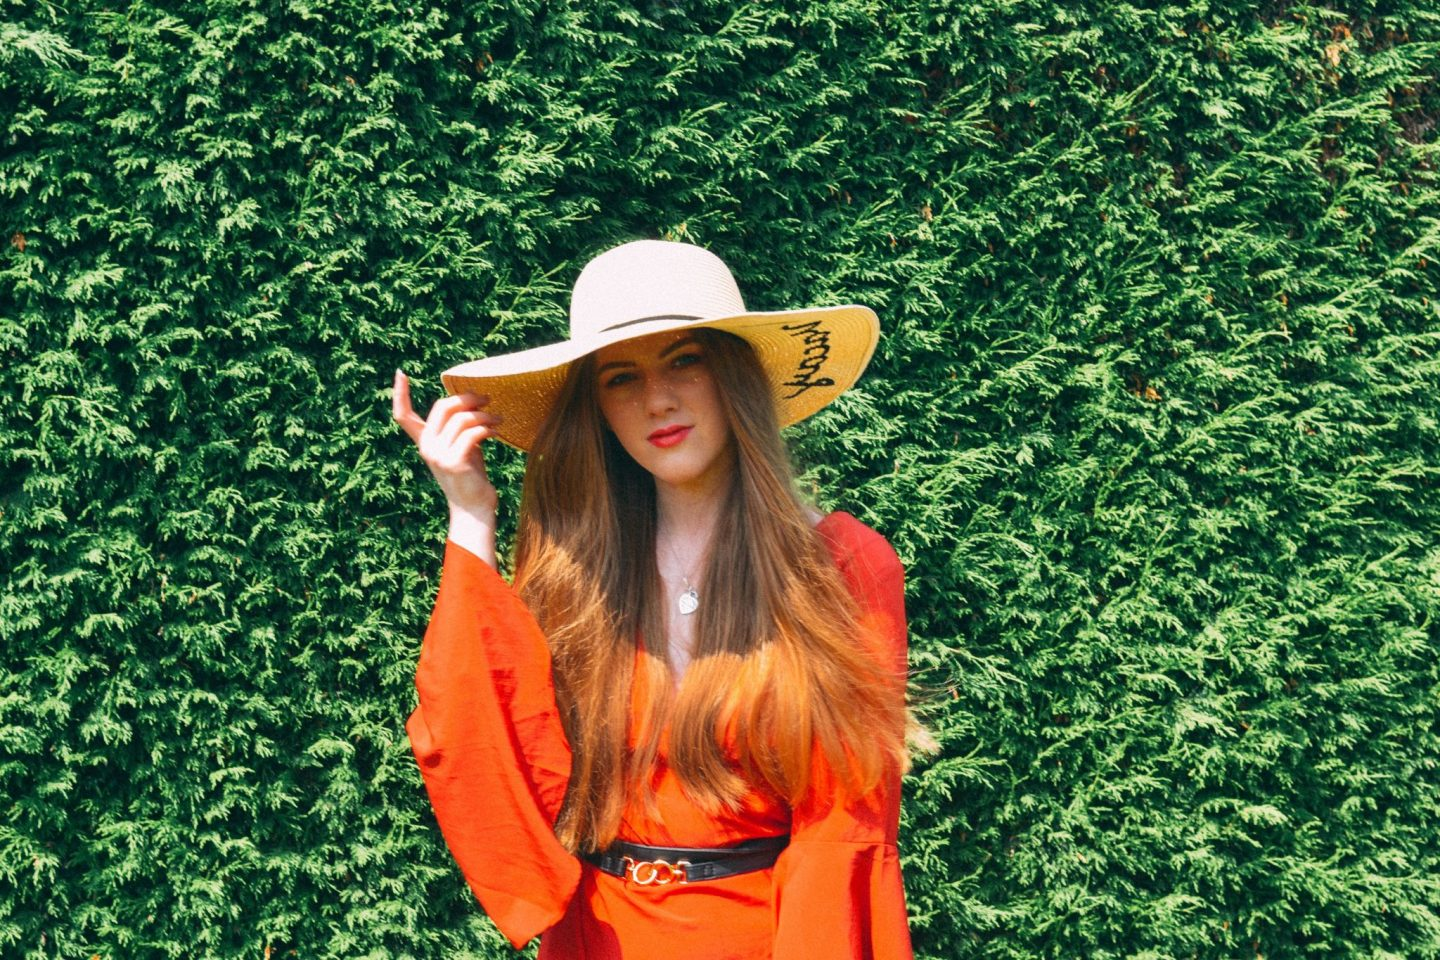 The £4 Straw Hat You Need For Summer